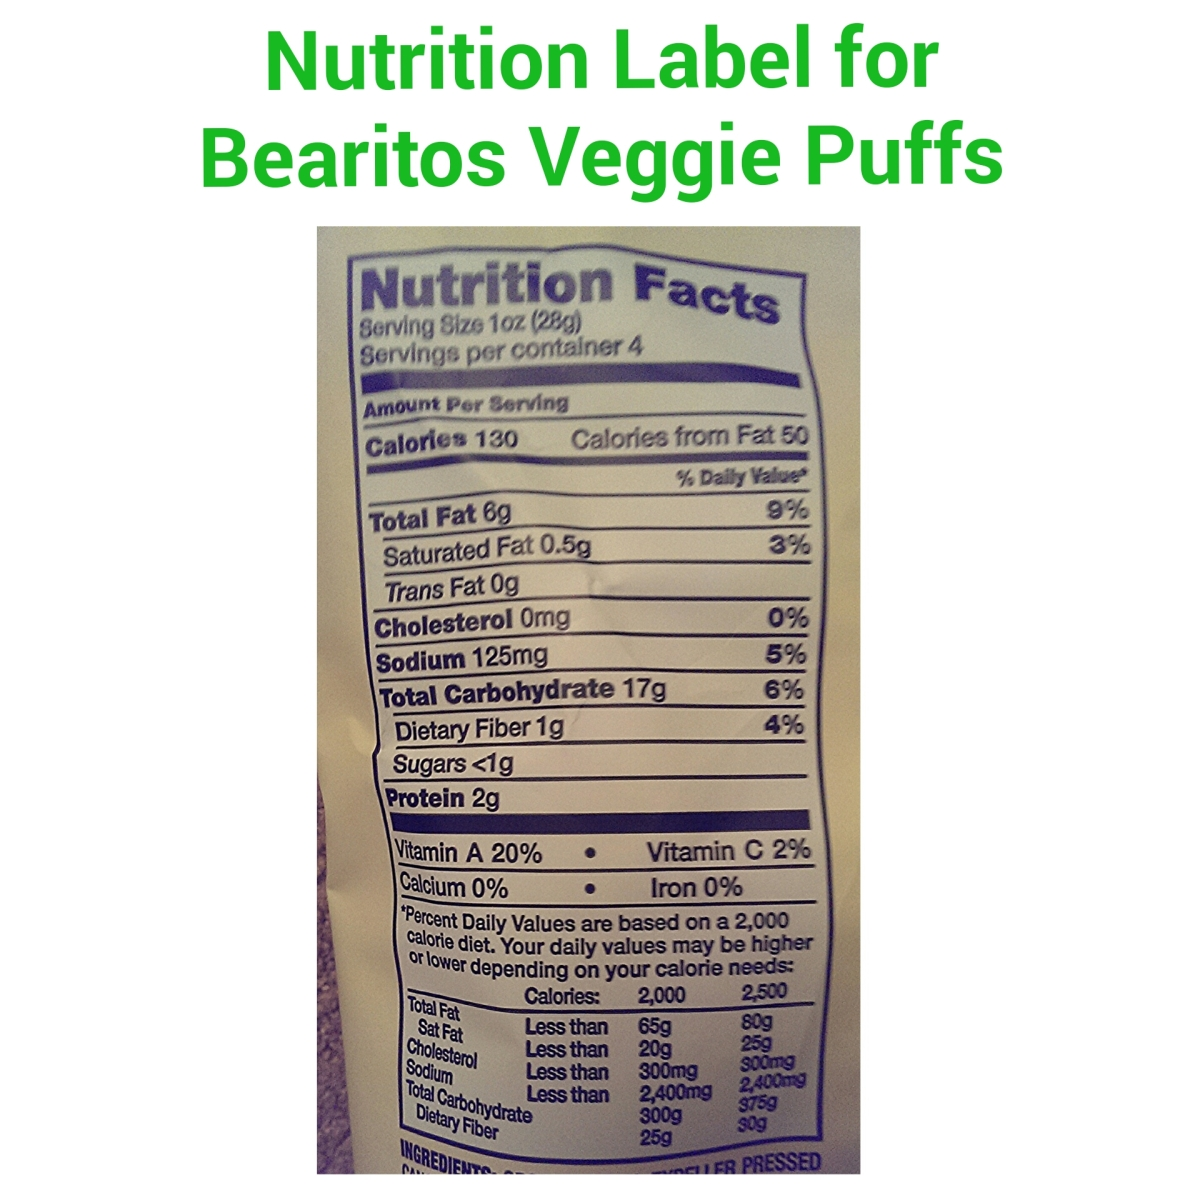 Bearitos Veggie Puffs Nutrition